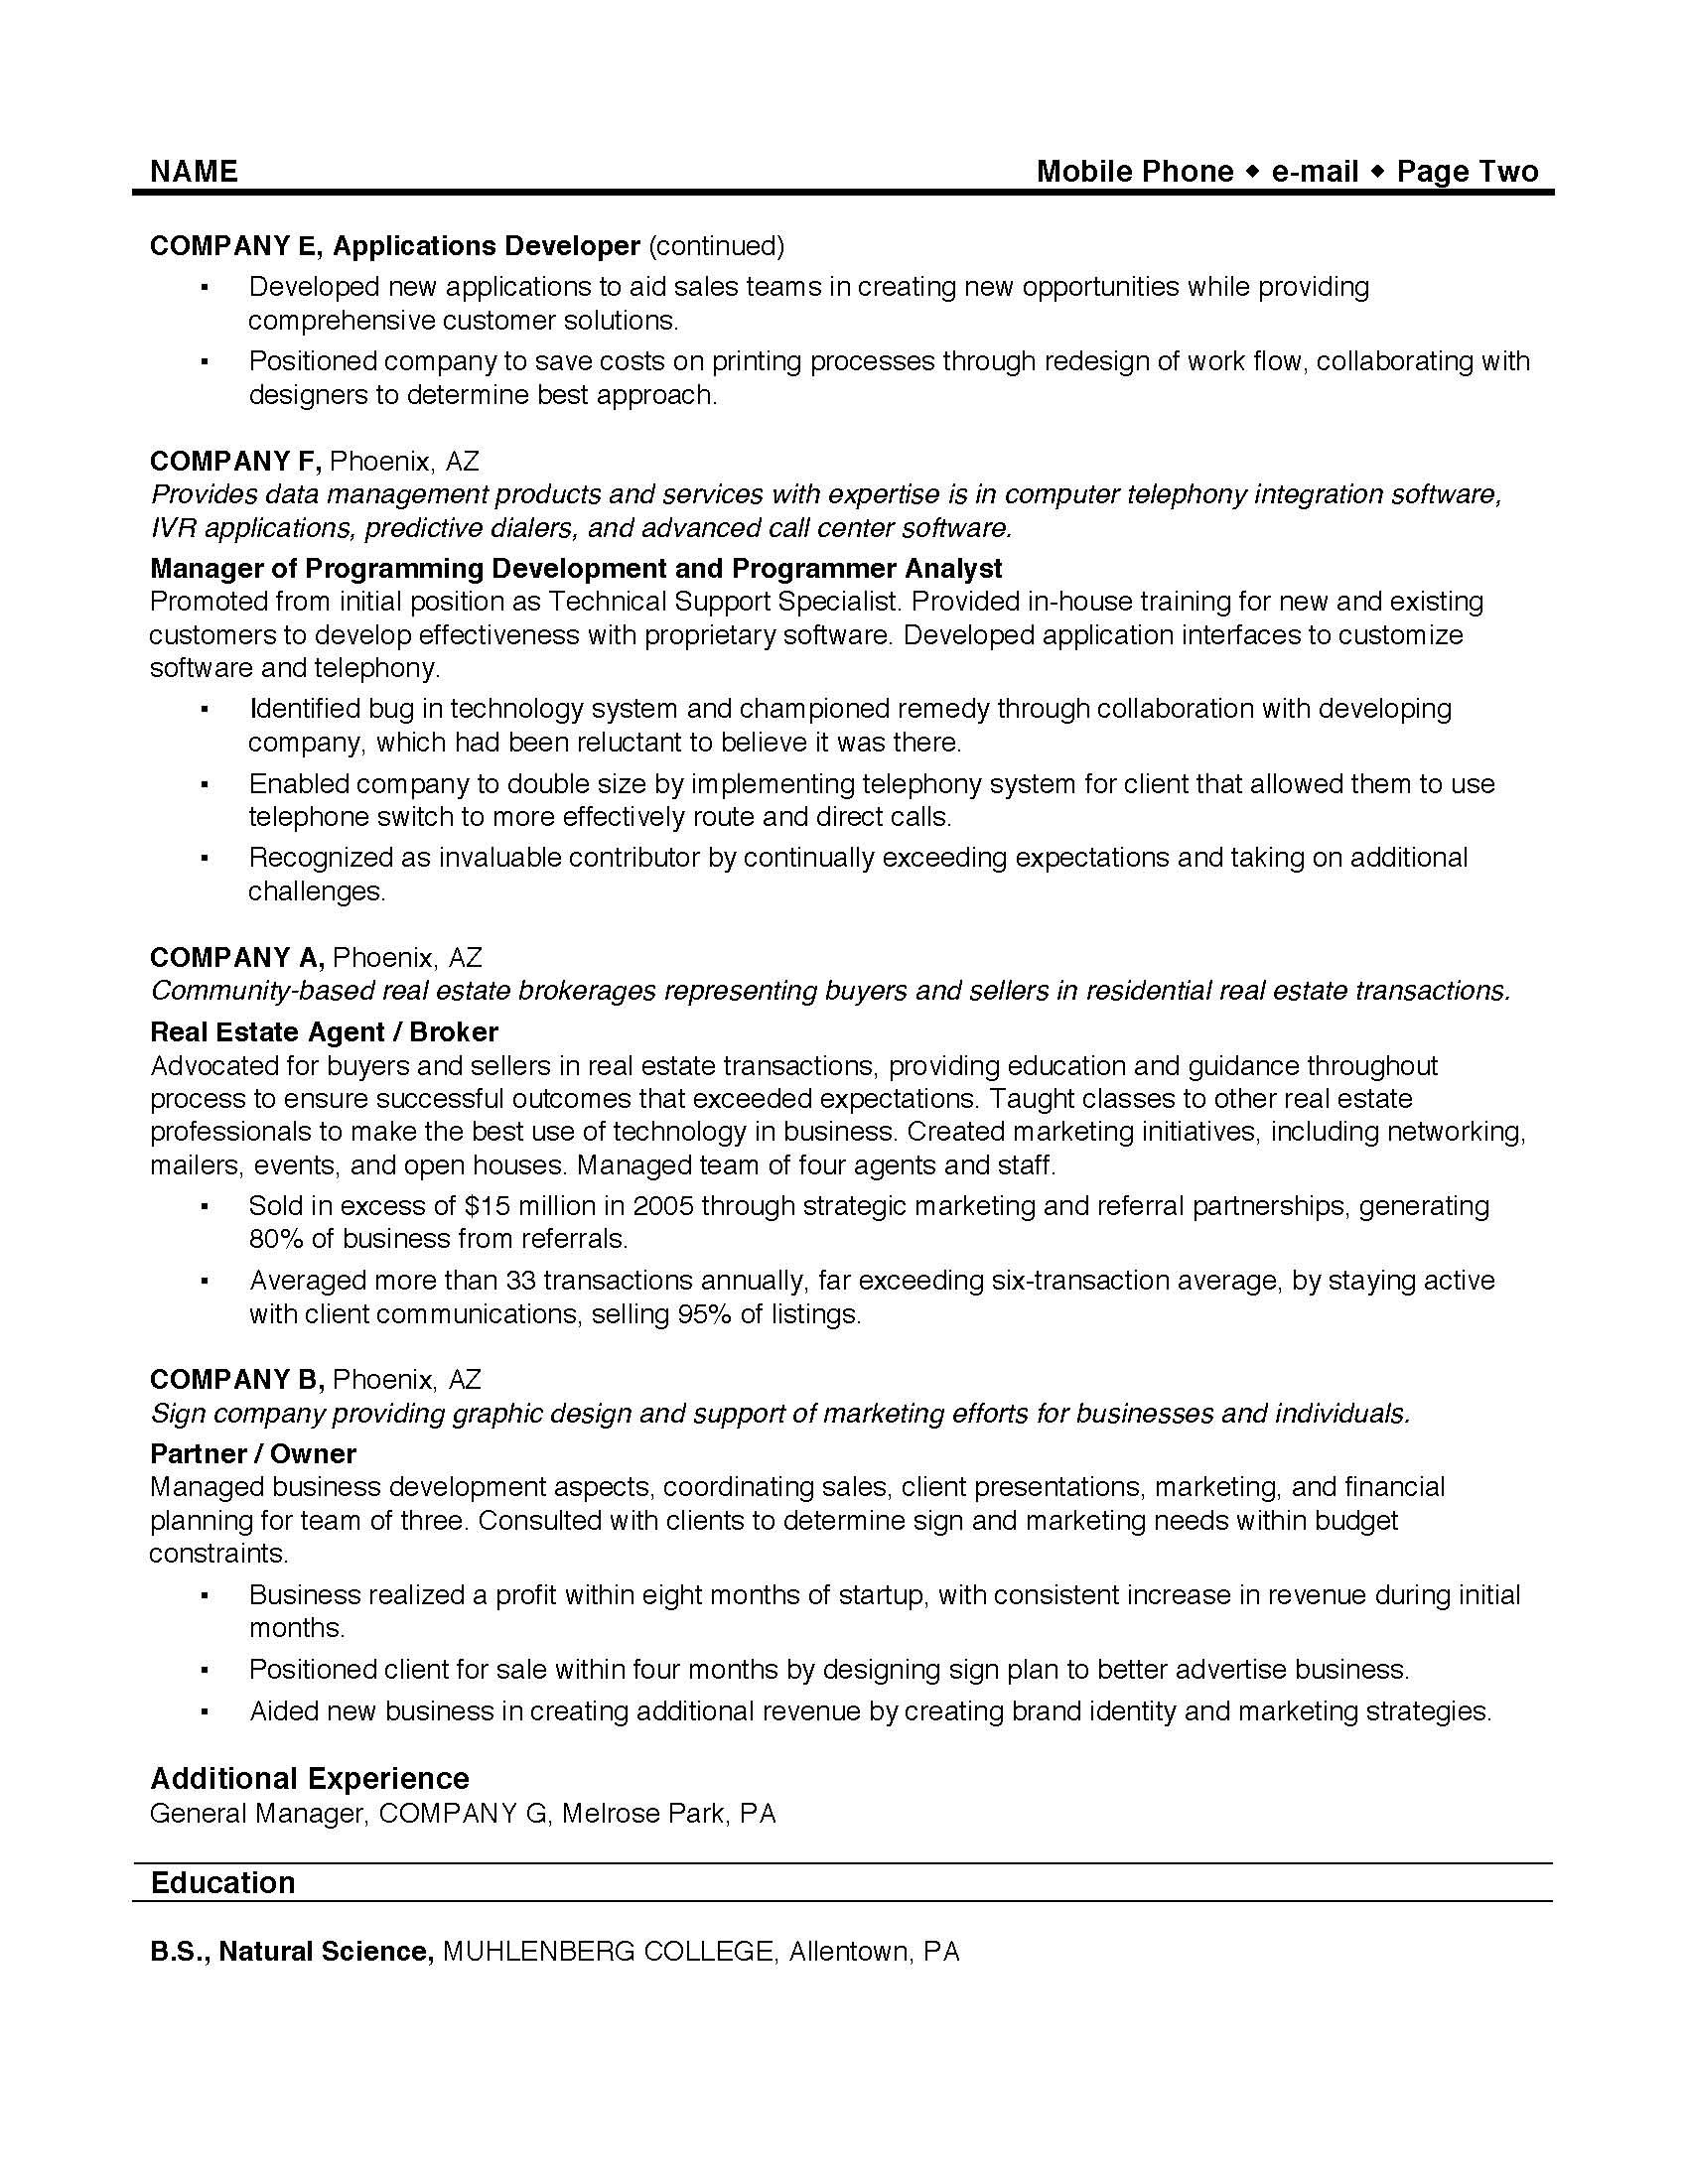 Resume For College Students Pics Photos Sample College Student Resume Examples Samples Resumes